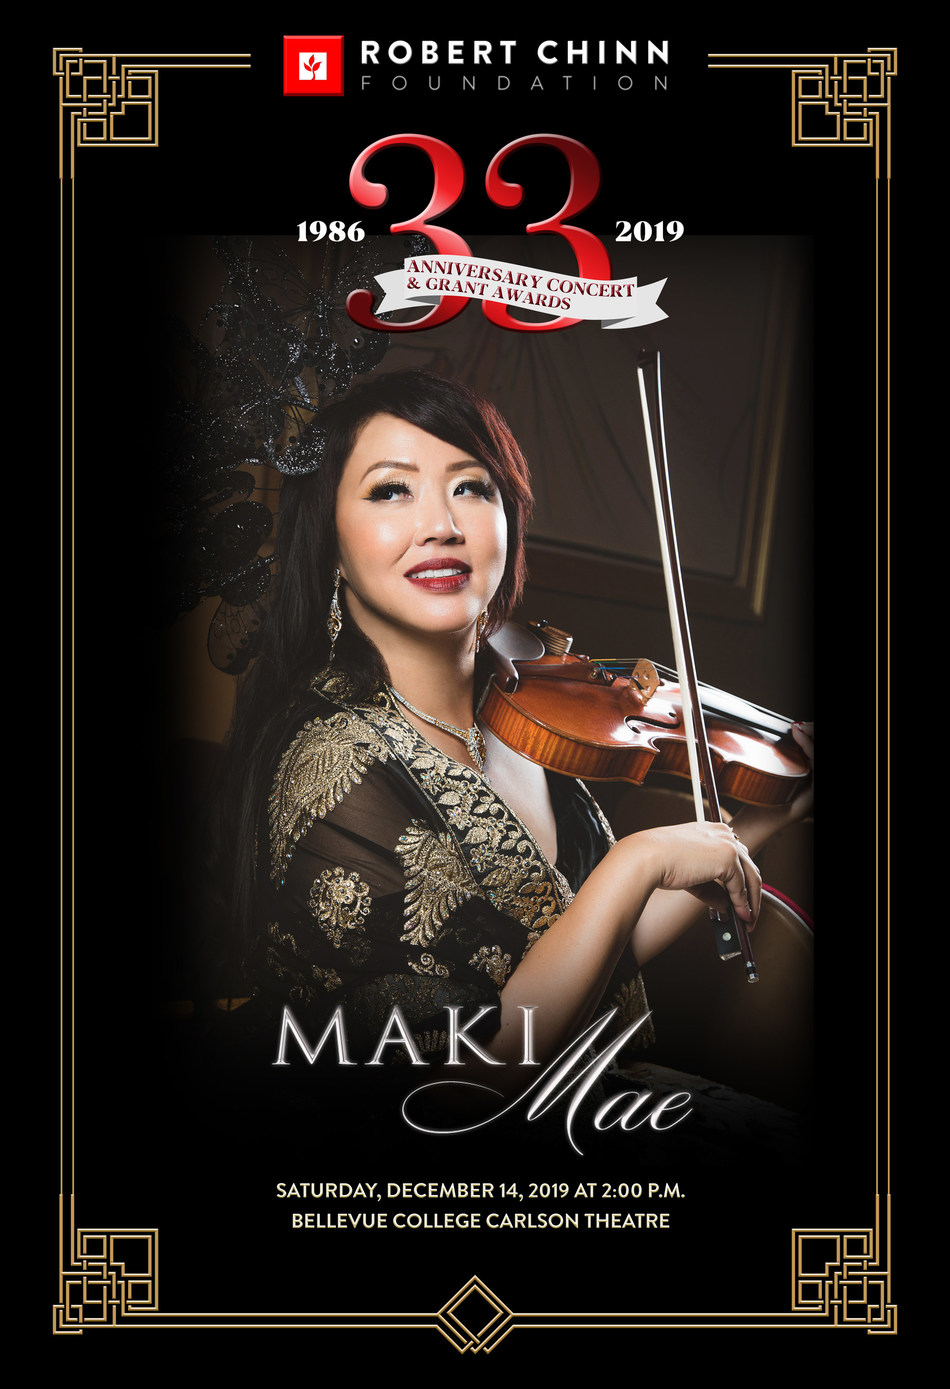 Virtuoso violinist and 13-language soprano Maki Mae headlines Robert Chinn Foundation's 33rd Anniversary Concert with Ed Roth, keyboardist to 9-Grammy Award winners.